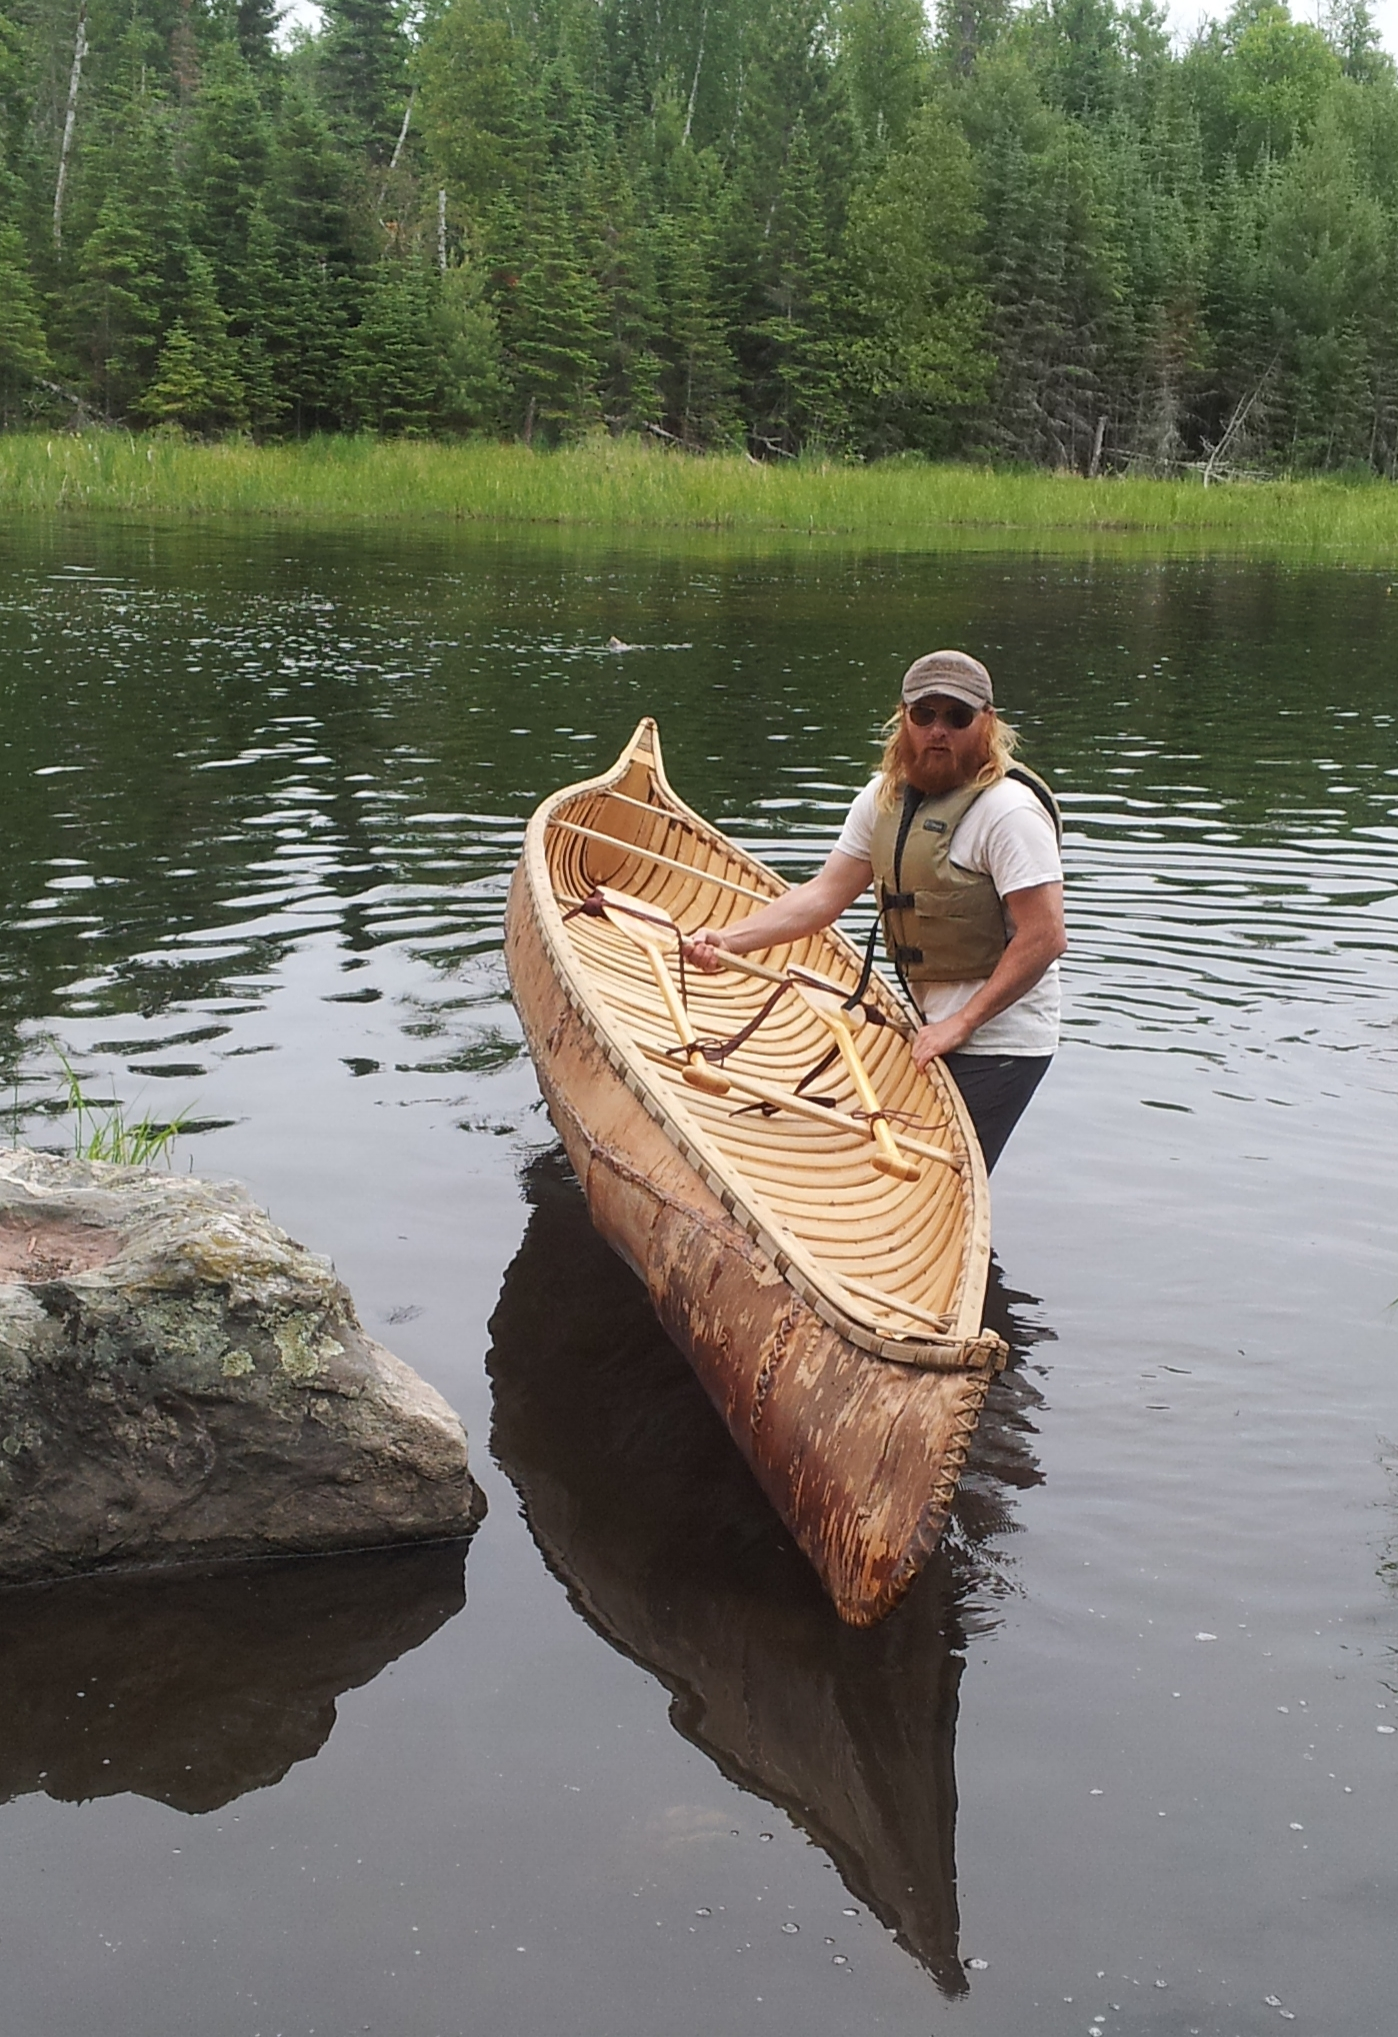 We have made traditional wilderness living skills and learning all there is to know about the Wilderness ecosystem our business because we love it, we live it, and we want to share it with You!